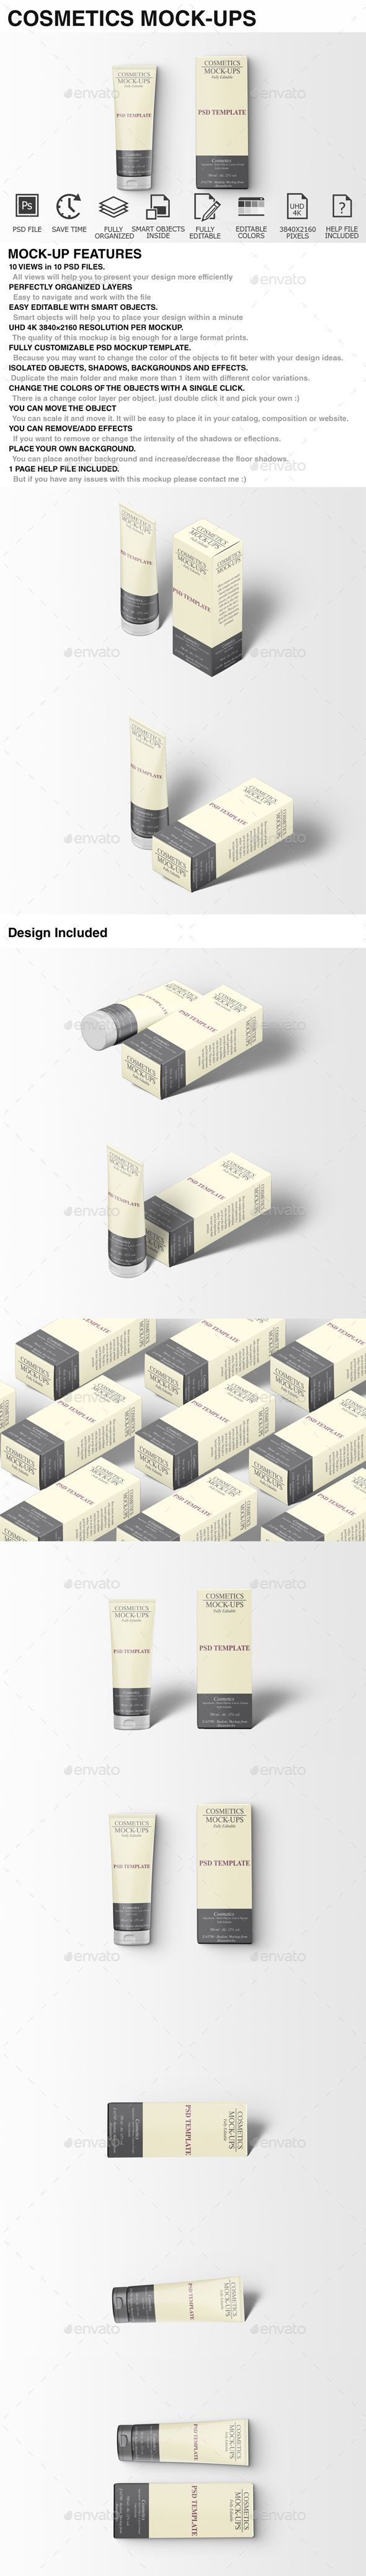 Cosmetics Mockup - Beauty Packaging